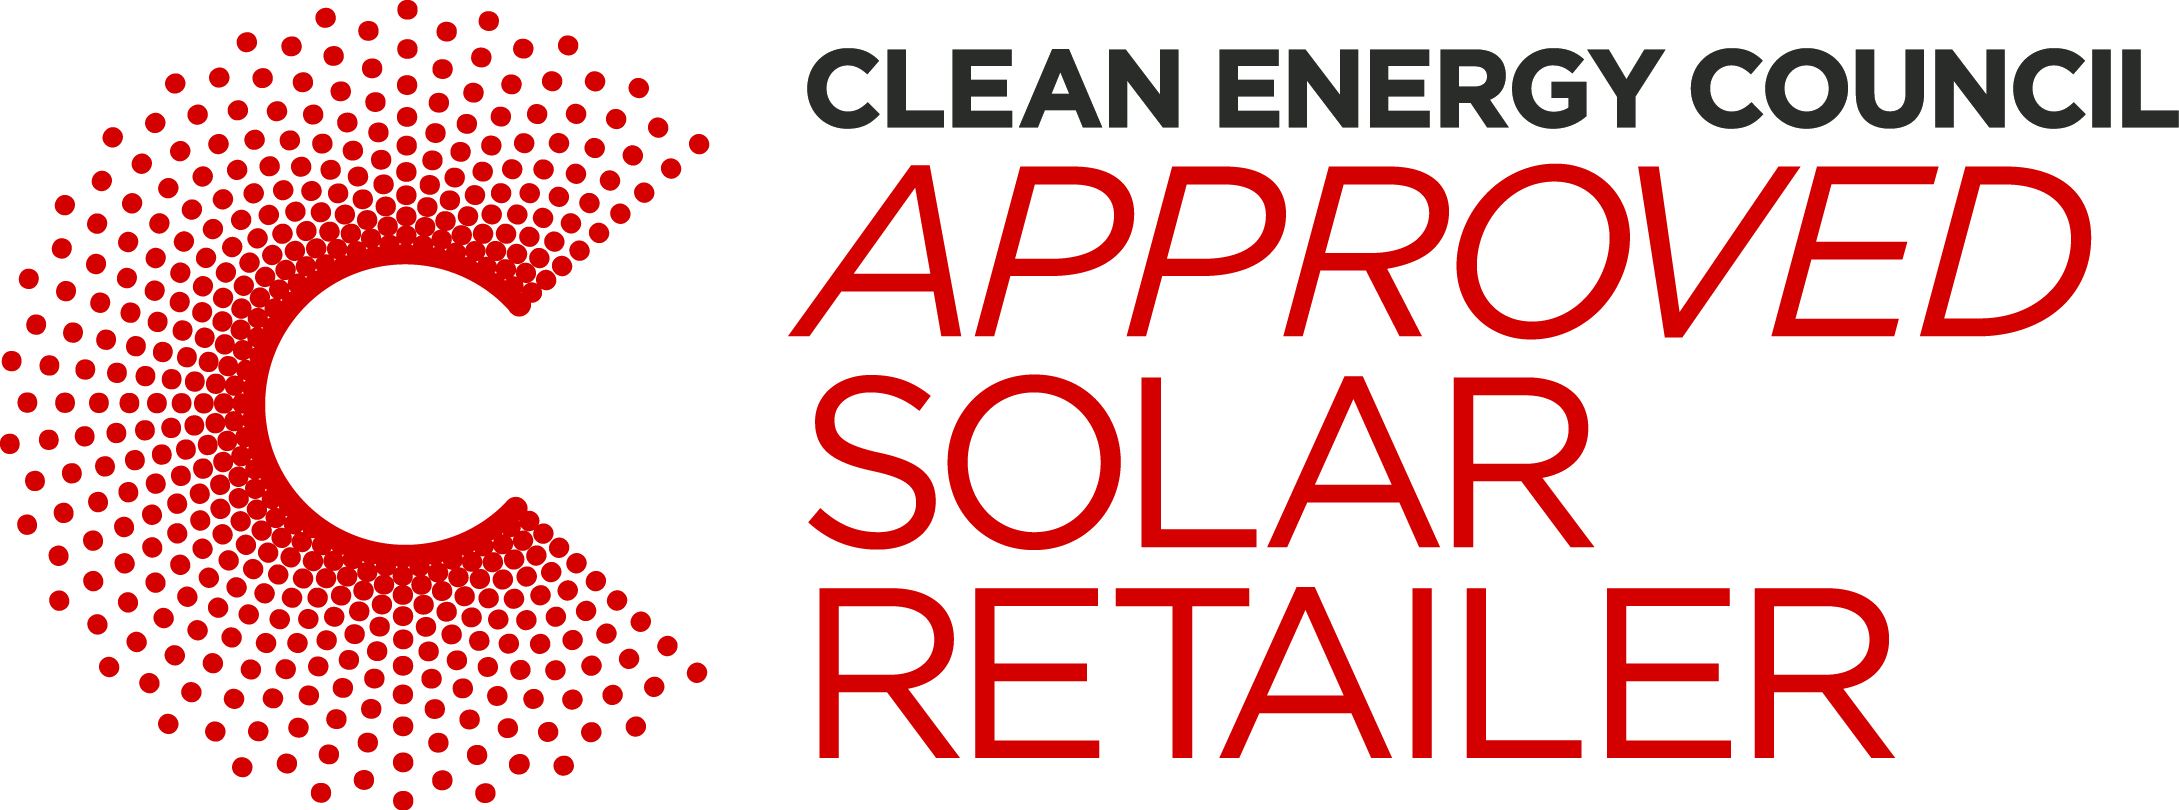 clean energy council solar cec